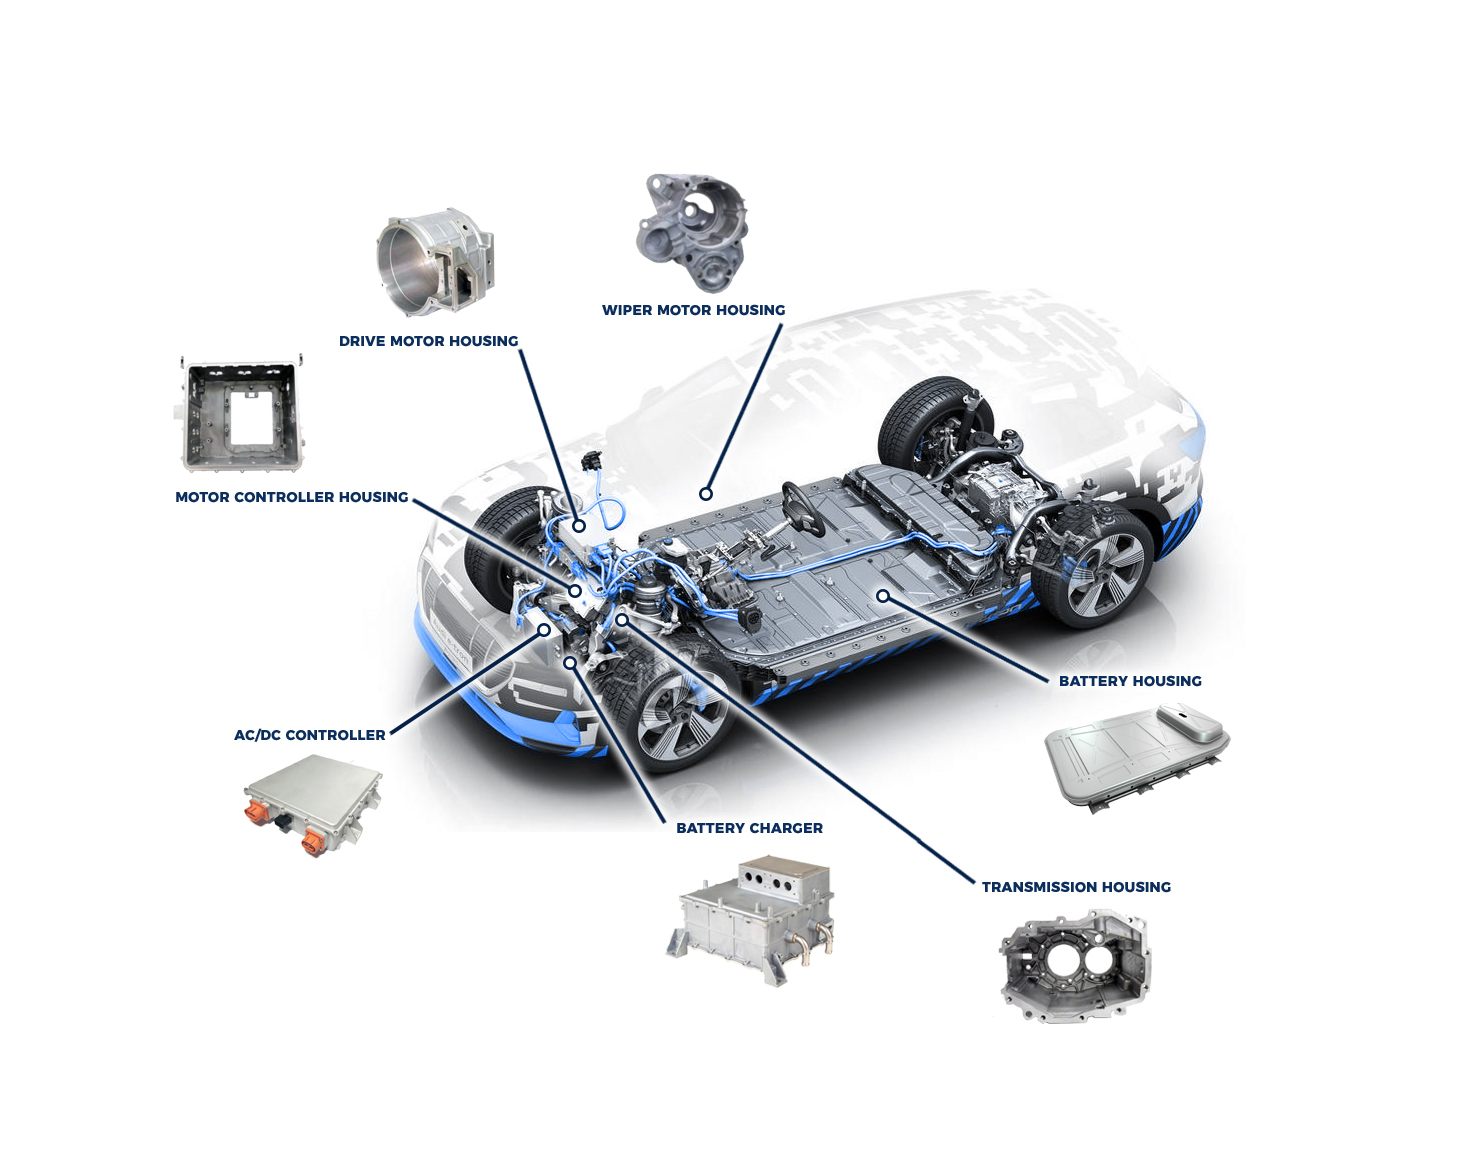 TOP 3 Aluminum Die Casting Application of Electric Vehicle and 5G Telecommunications